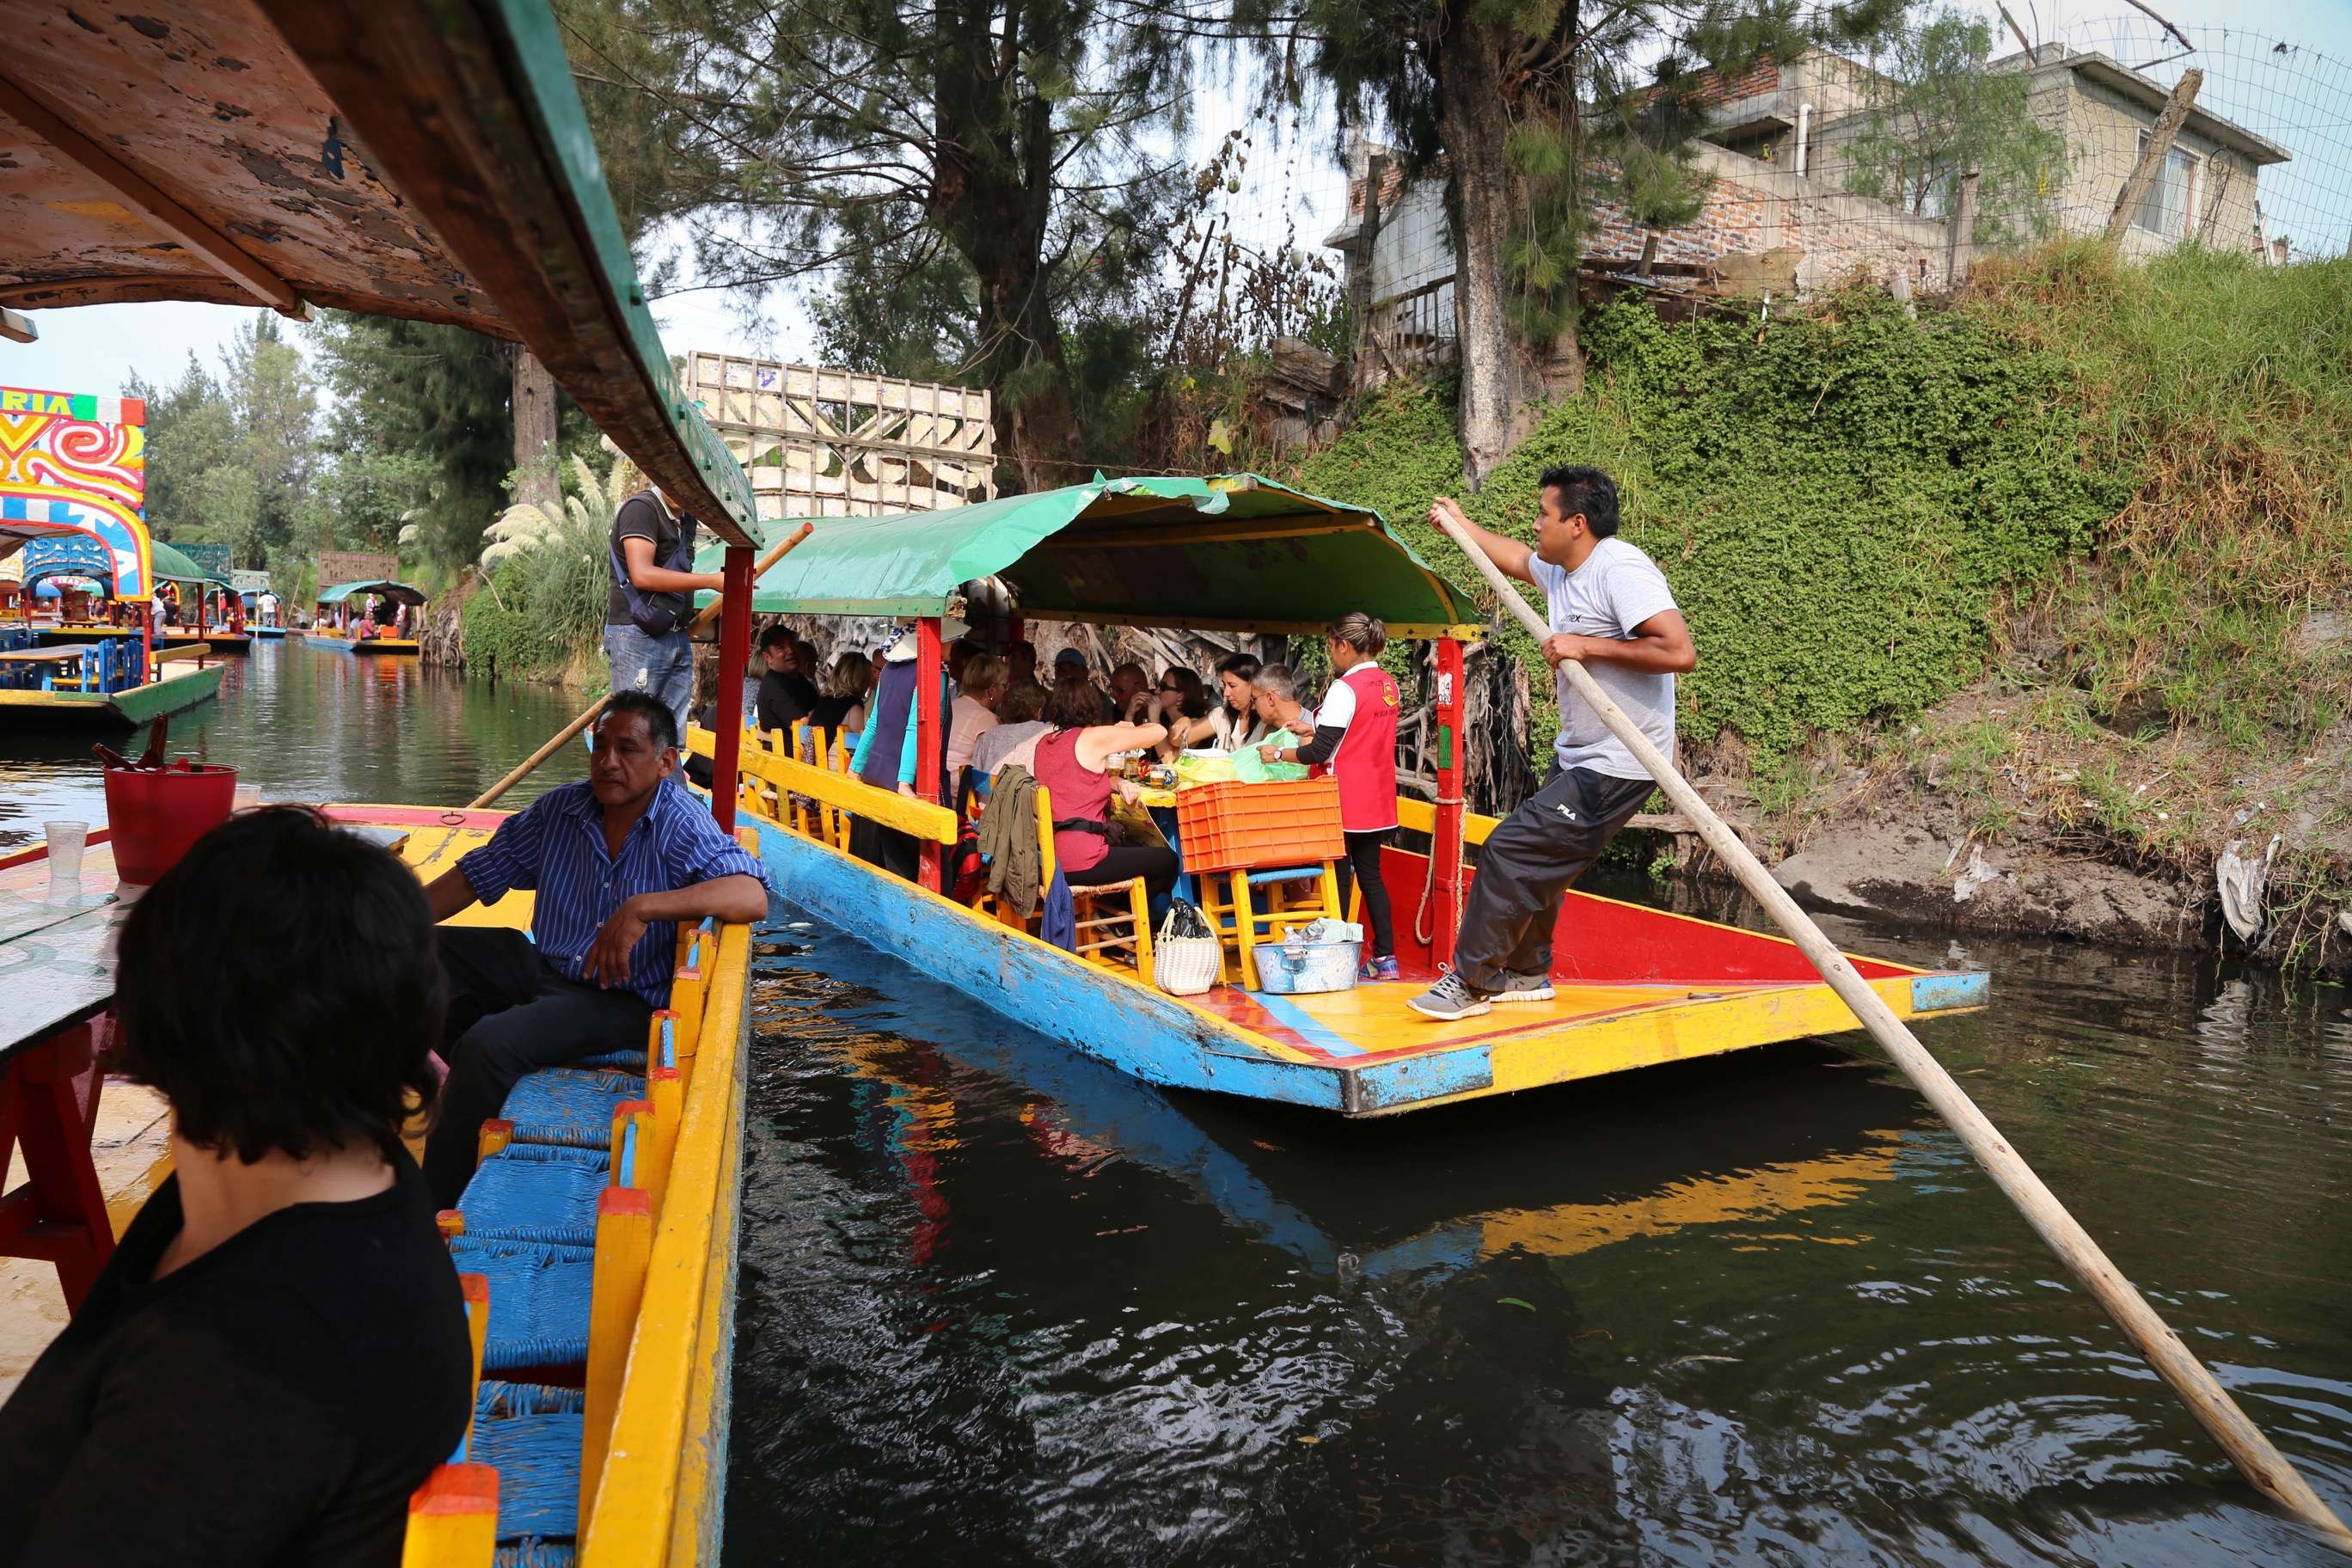 You can only go along the canals at Xochimilco as fast as the 'captain' can pole his boat.